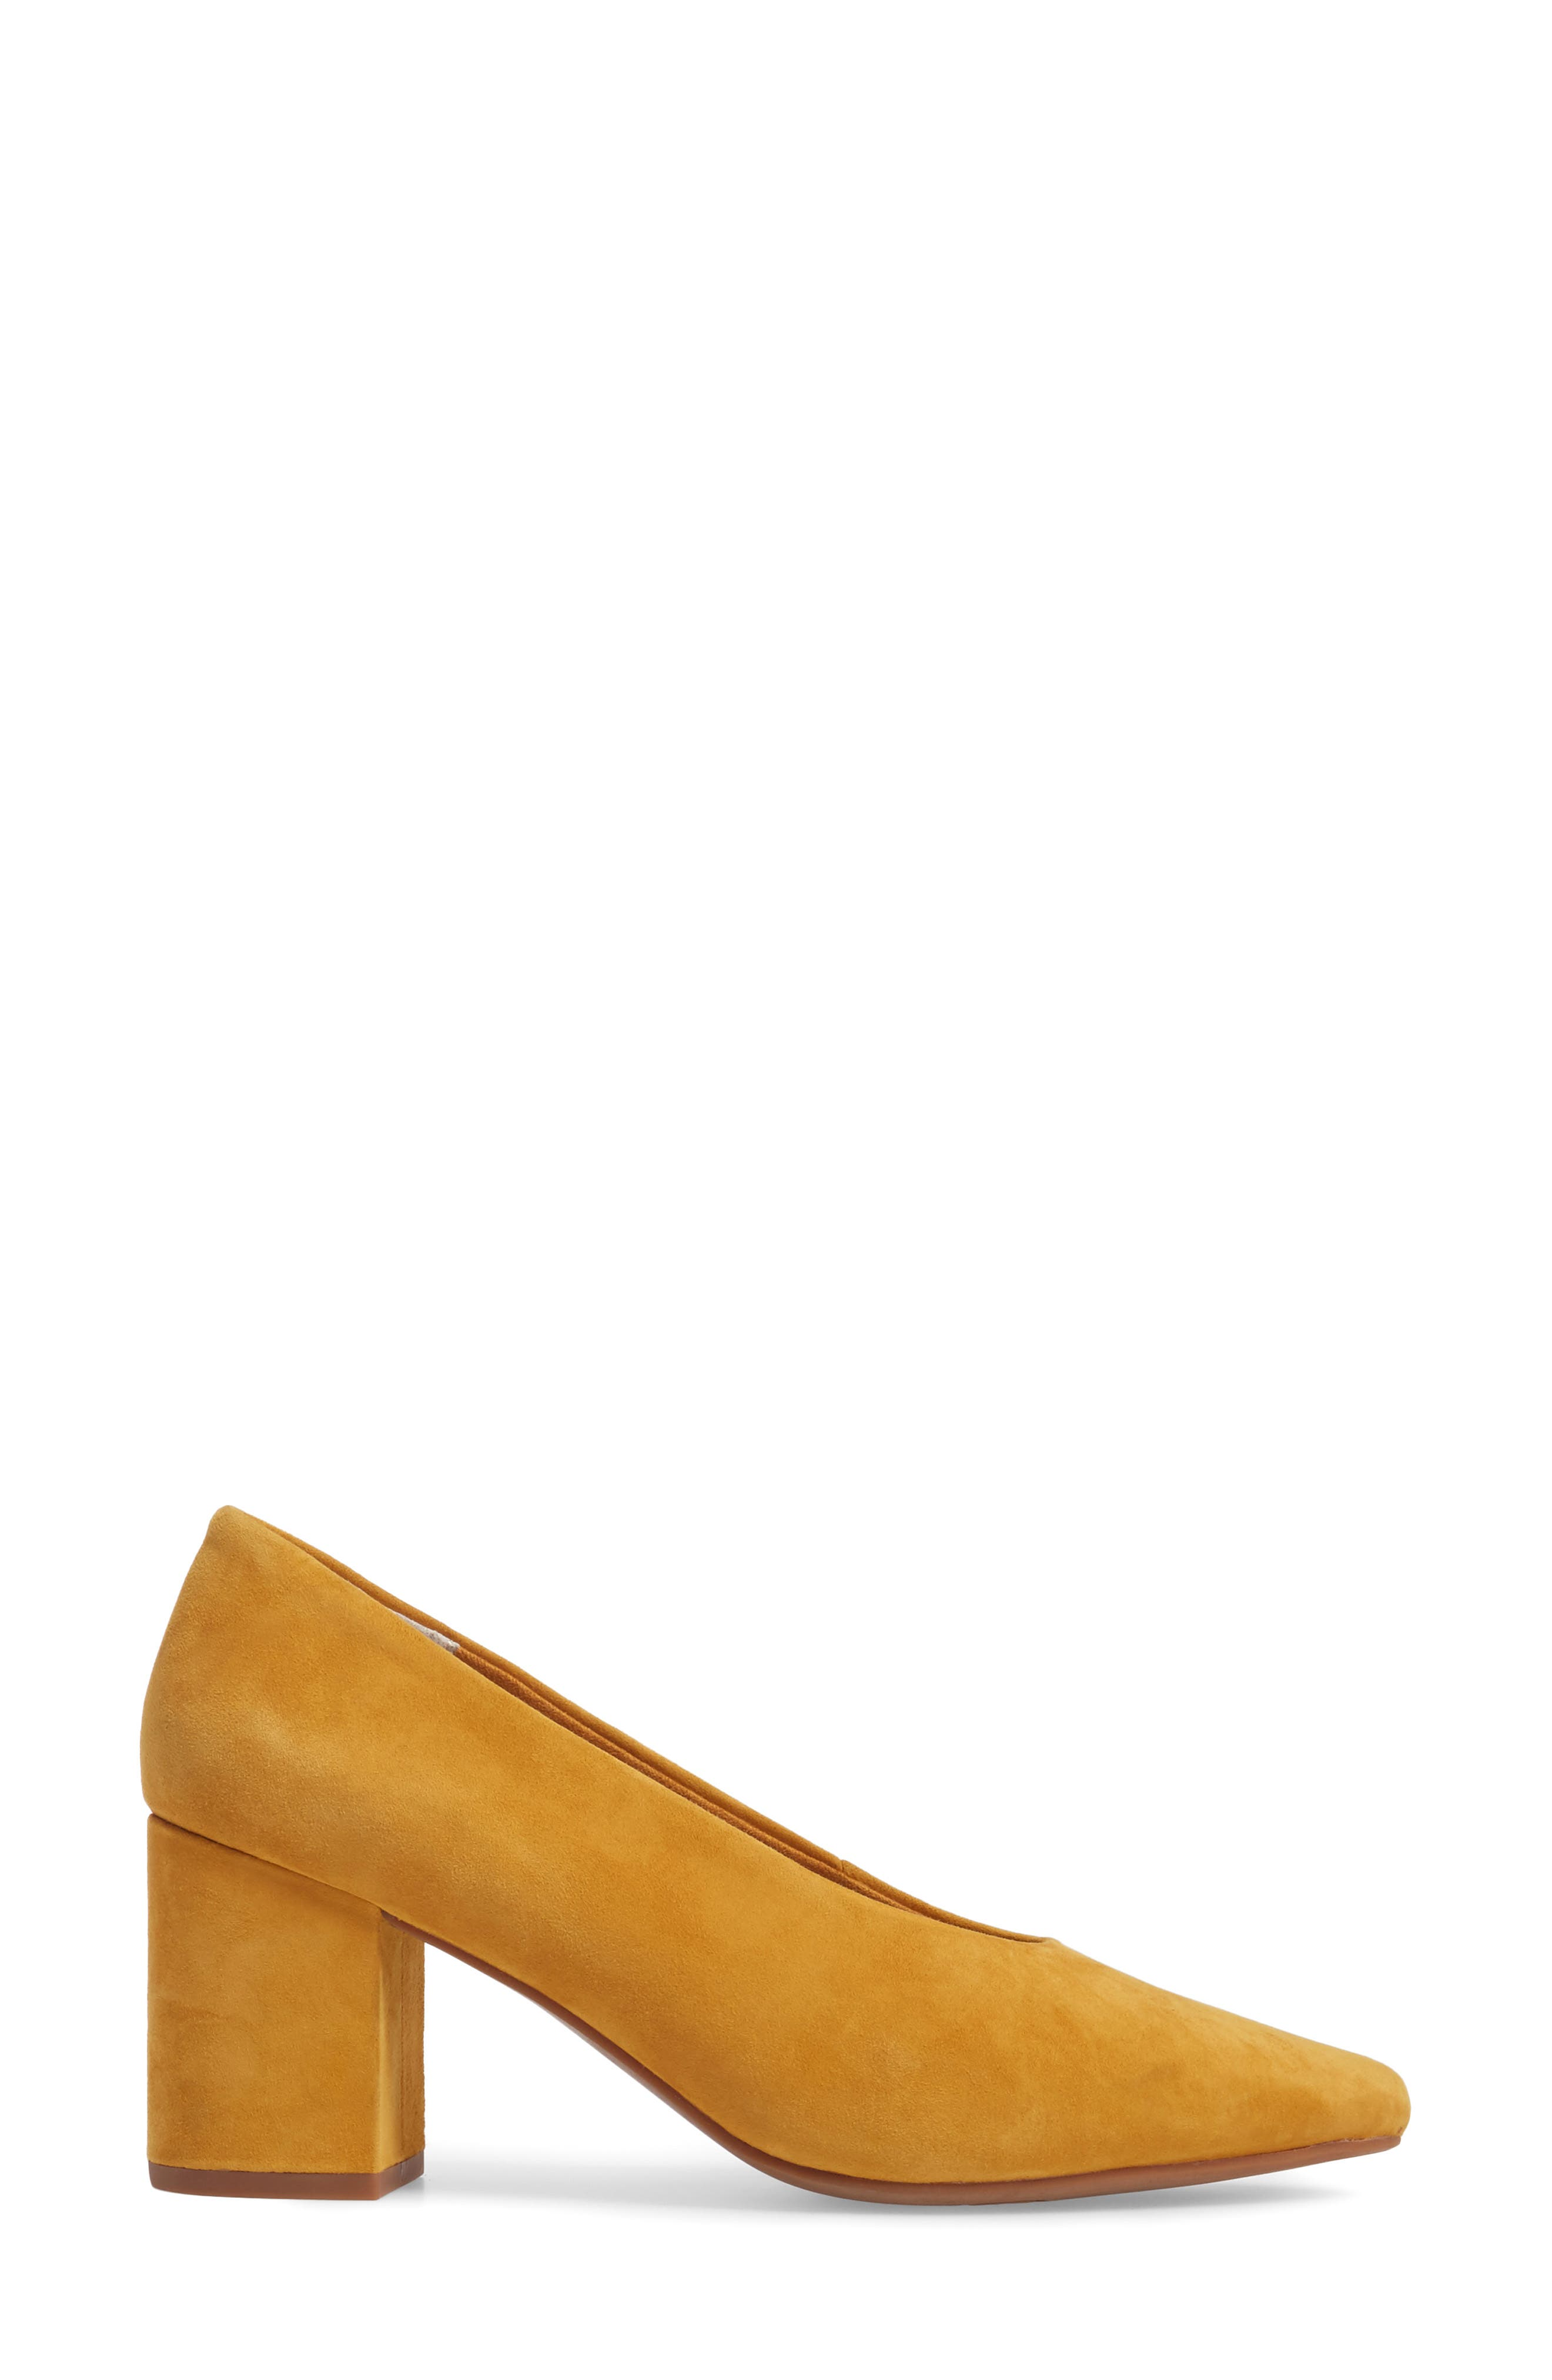 Rehearse Pointy Toe Pump,                             Alternate thumbnail 3, color,                             MUSTARD SUEDE